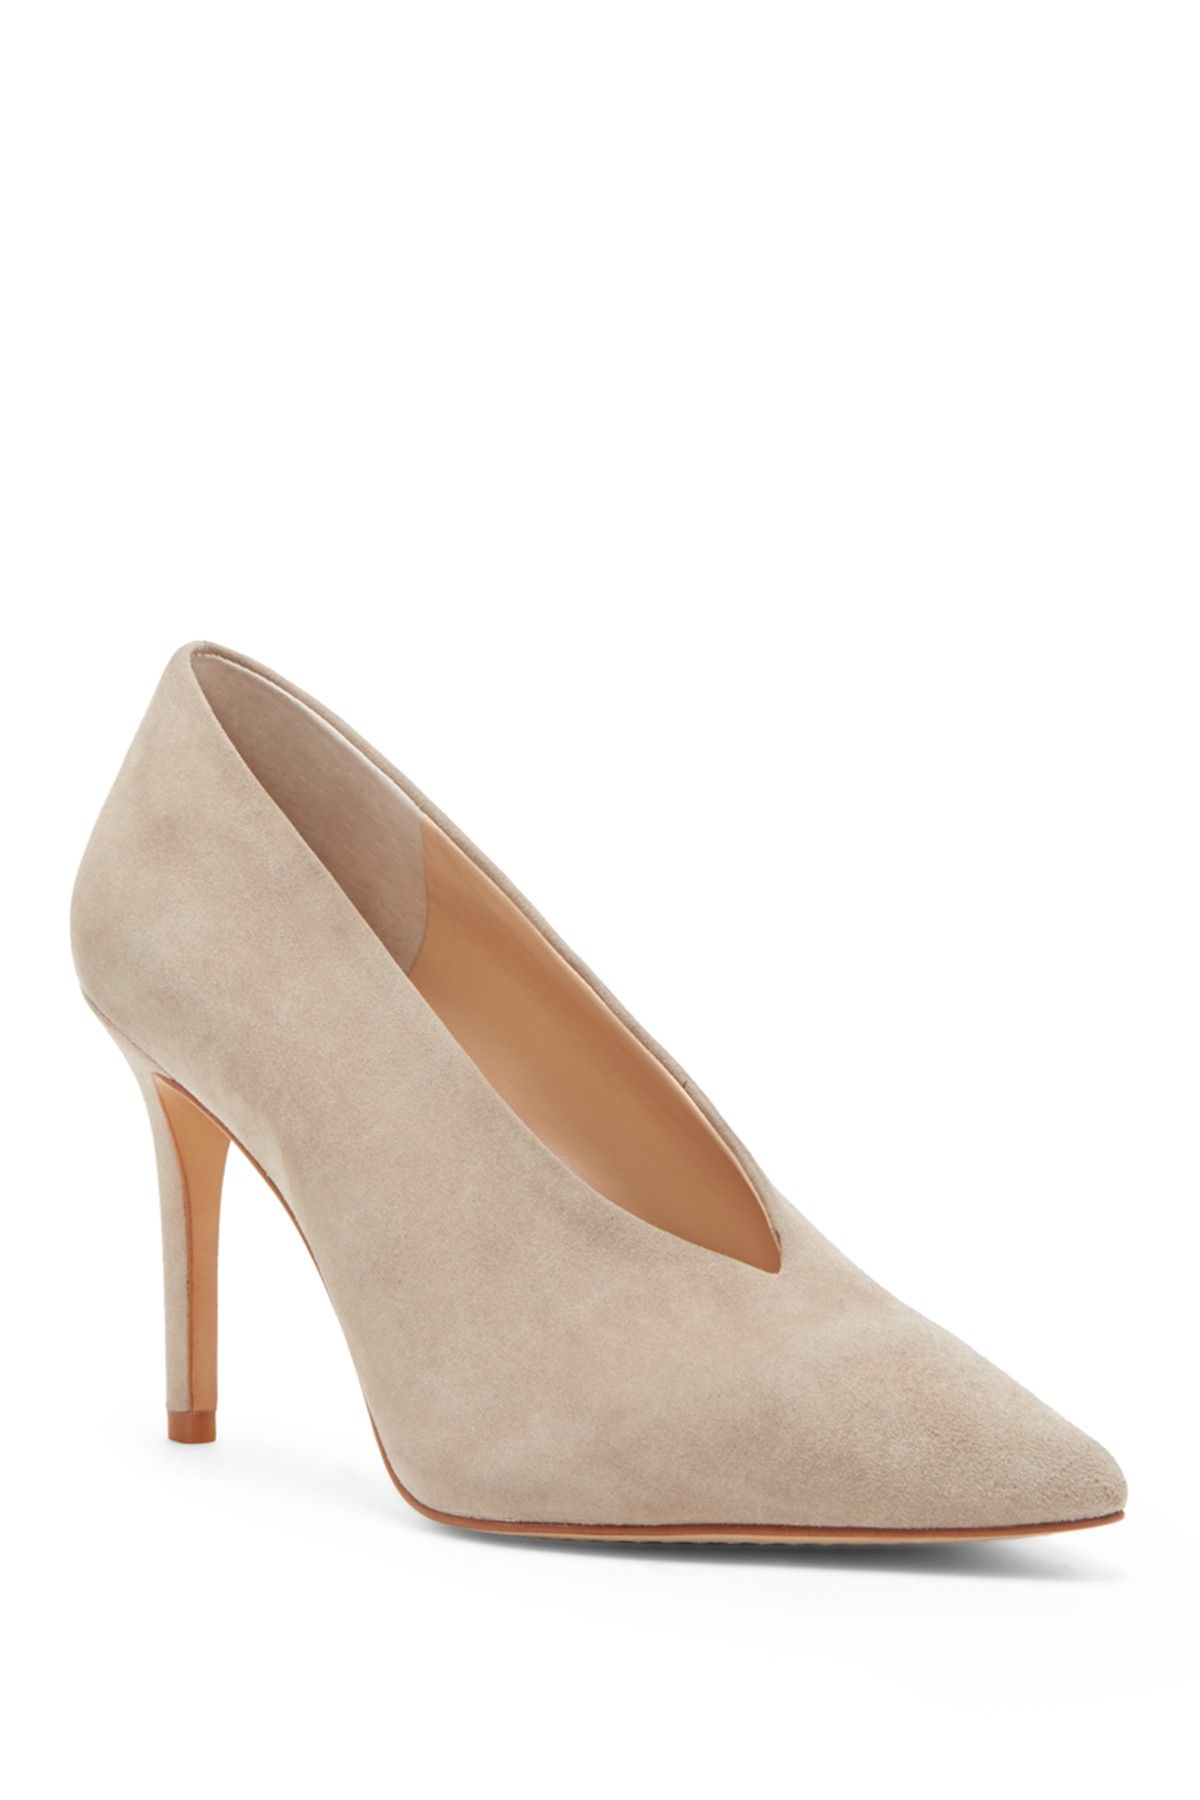 56ab884faf4 Ankia Pointed Toe Pump by Vince Camuto on  nordstrom rack